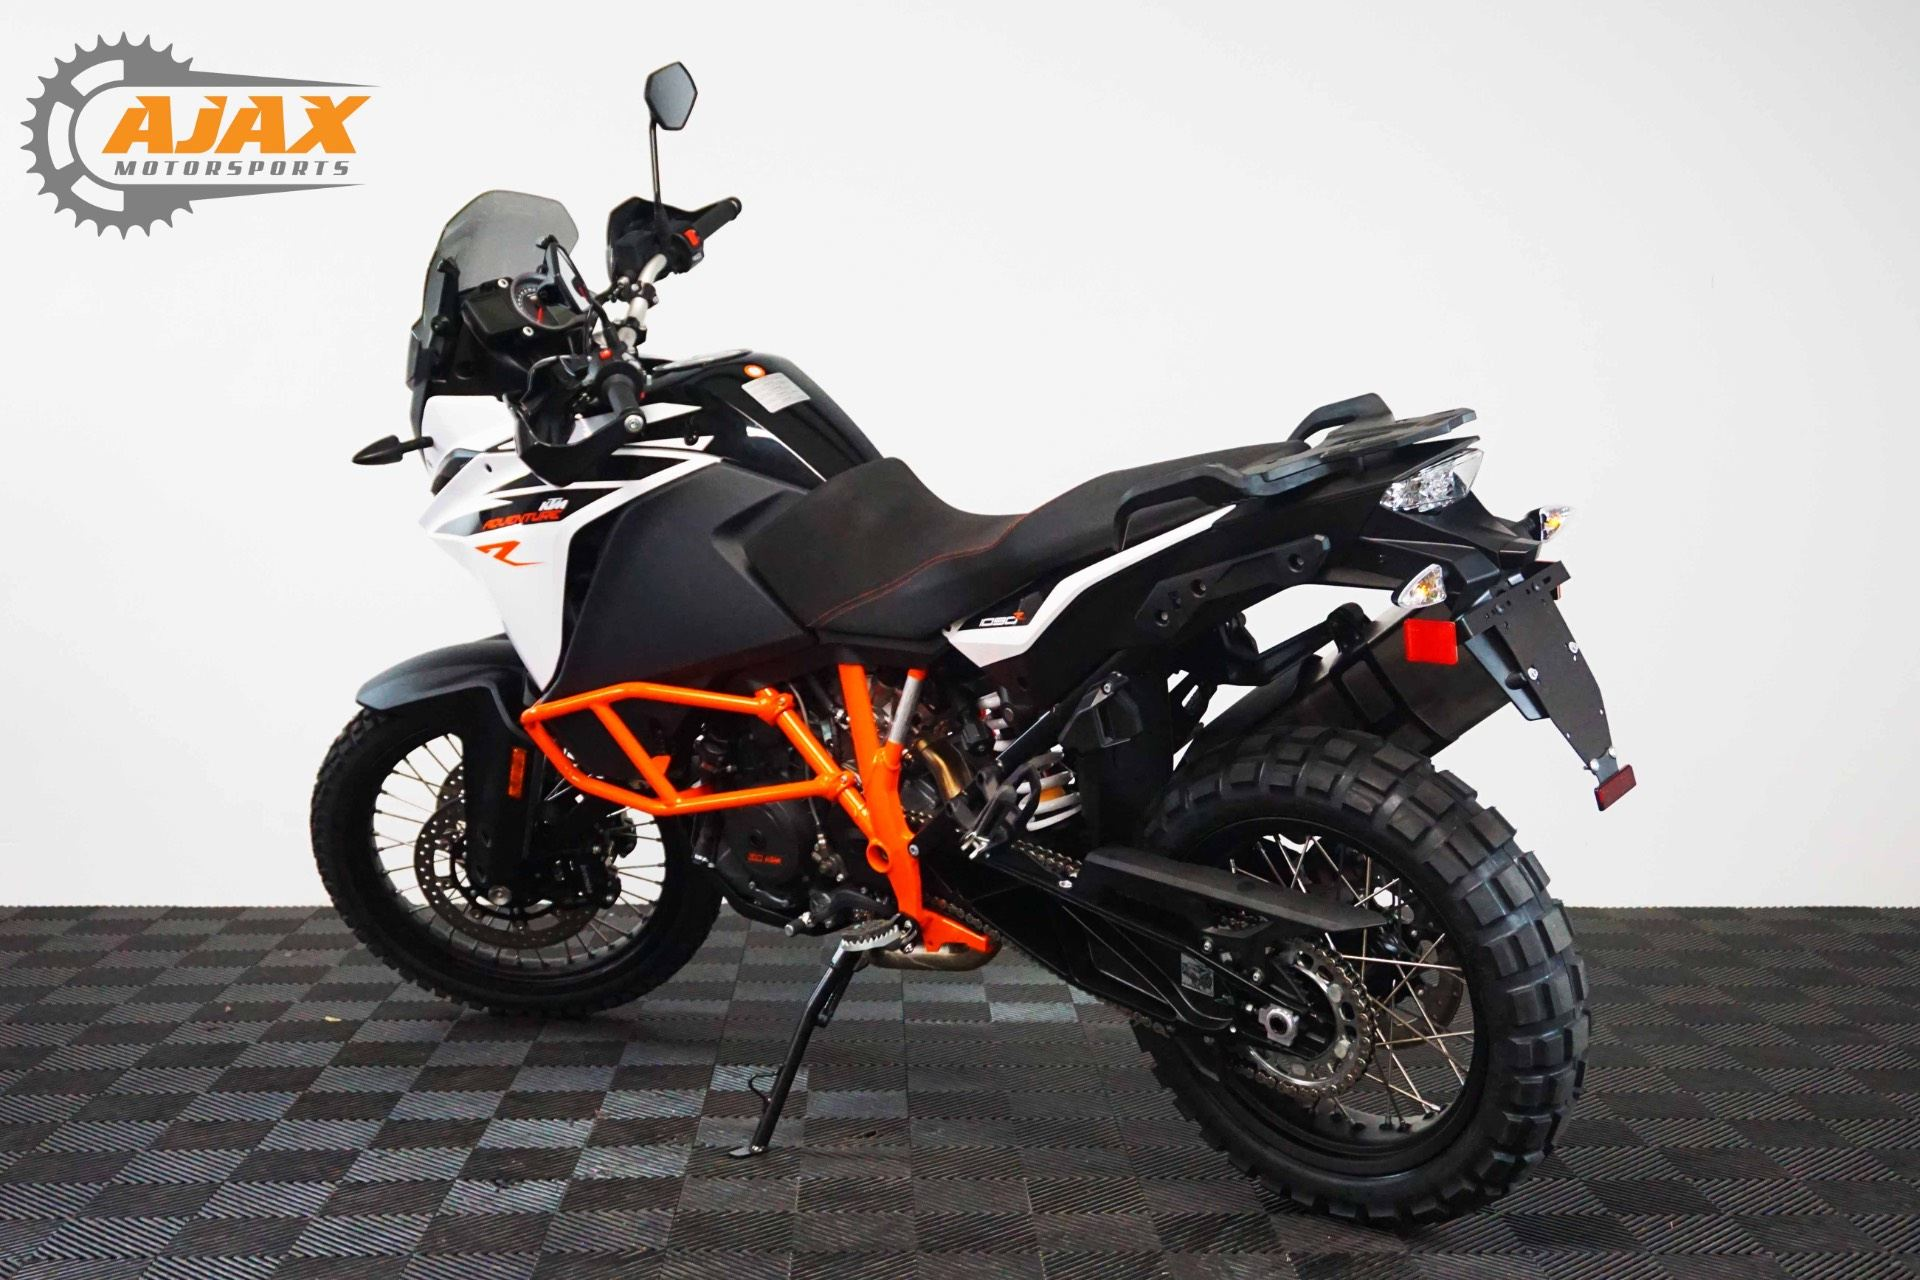 Ktm Atv For Sale Nj